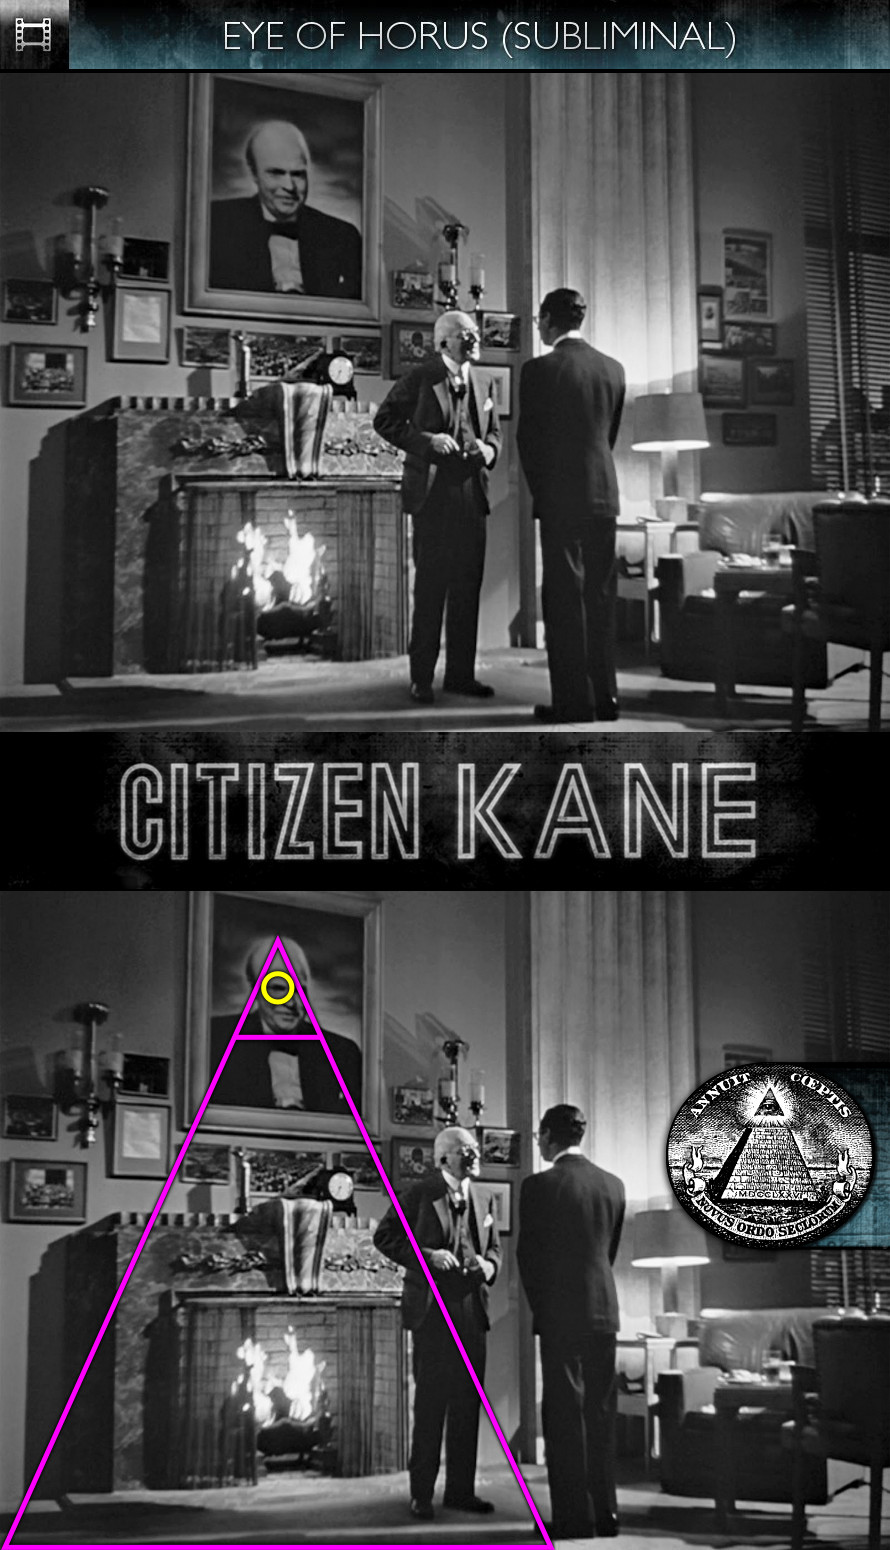 Citizen Kane (1941) - Eye of Horus - Subliminal